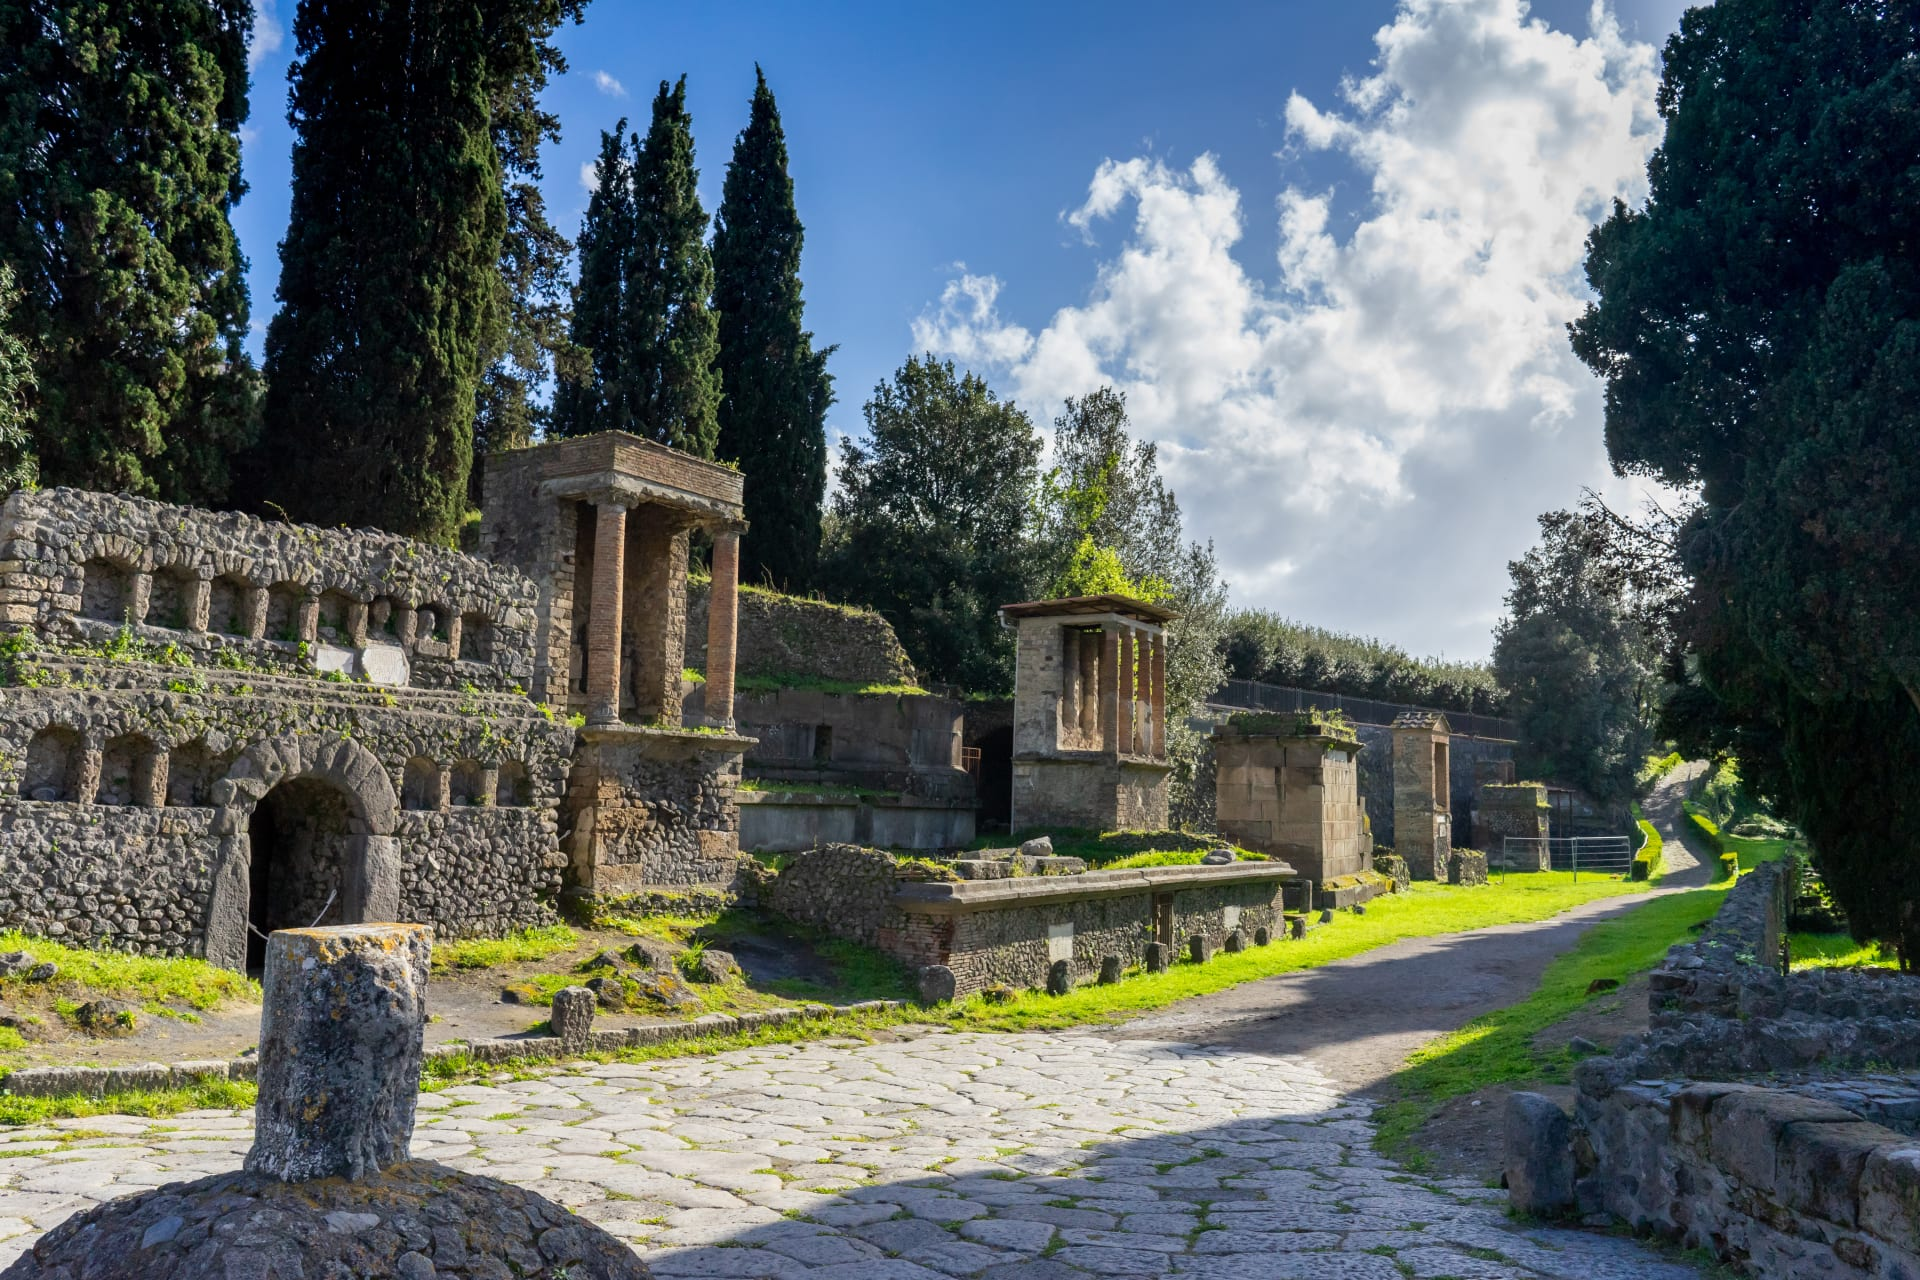 Pompeii and  Herculaneum - Pompeii: Life and Death in a Roman Town